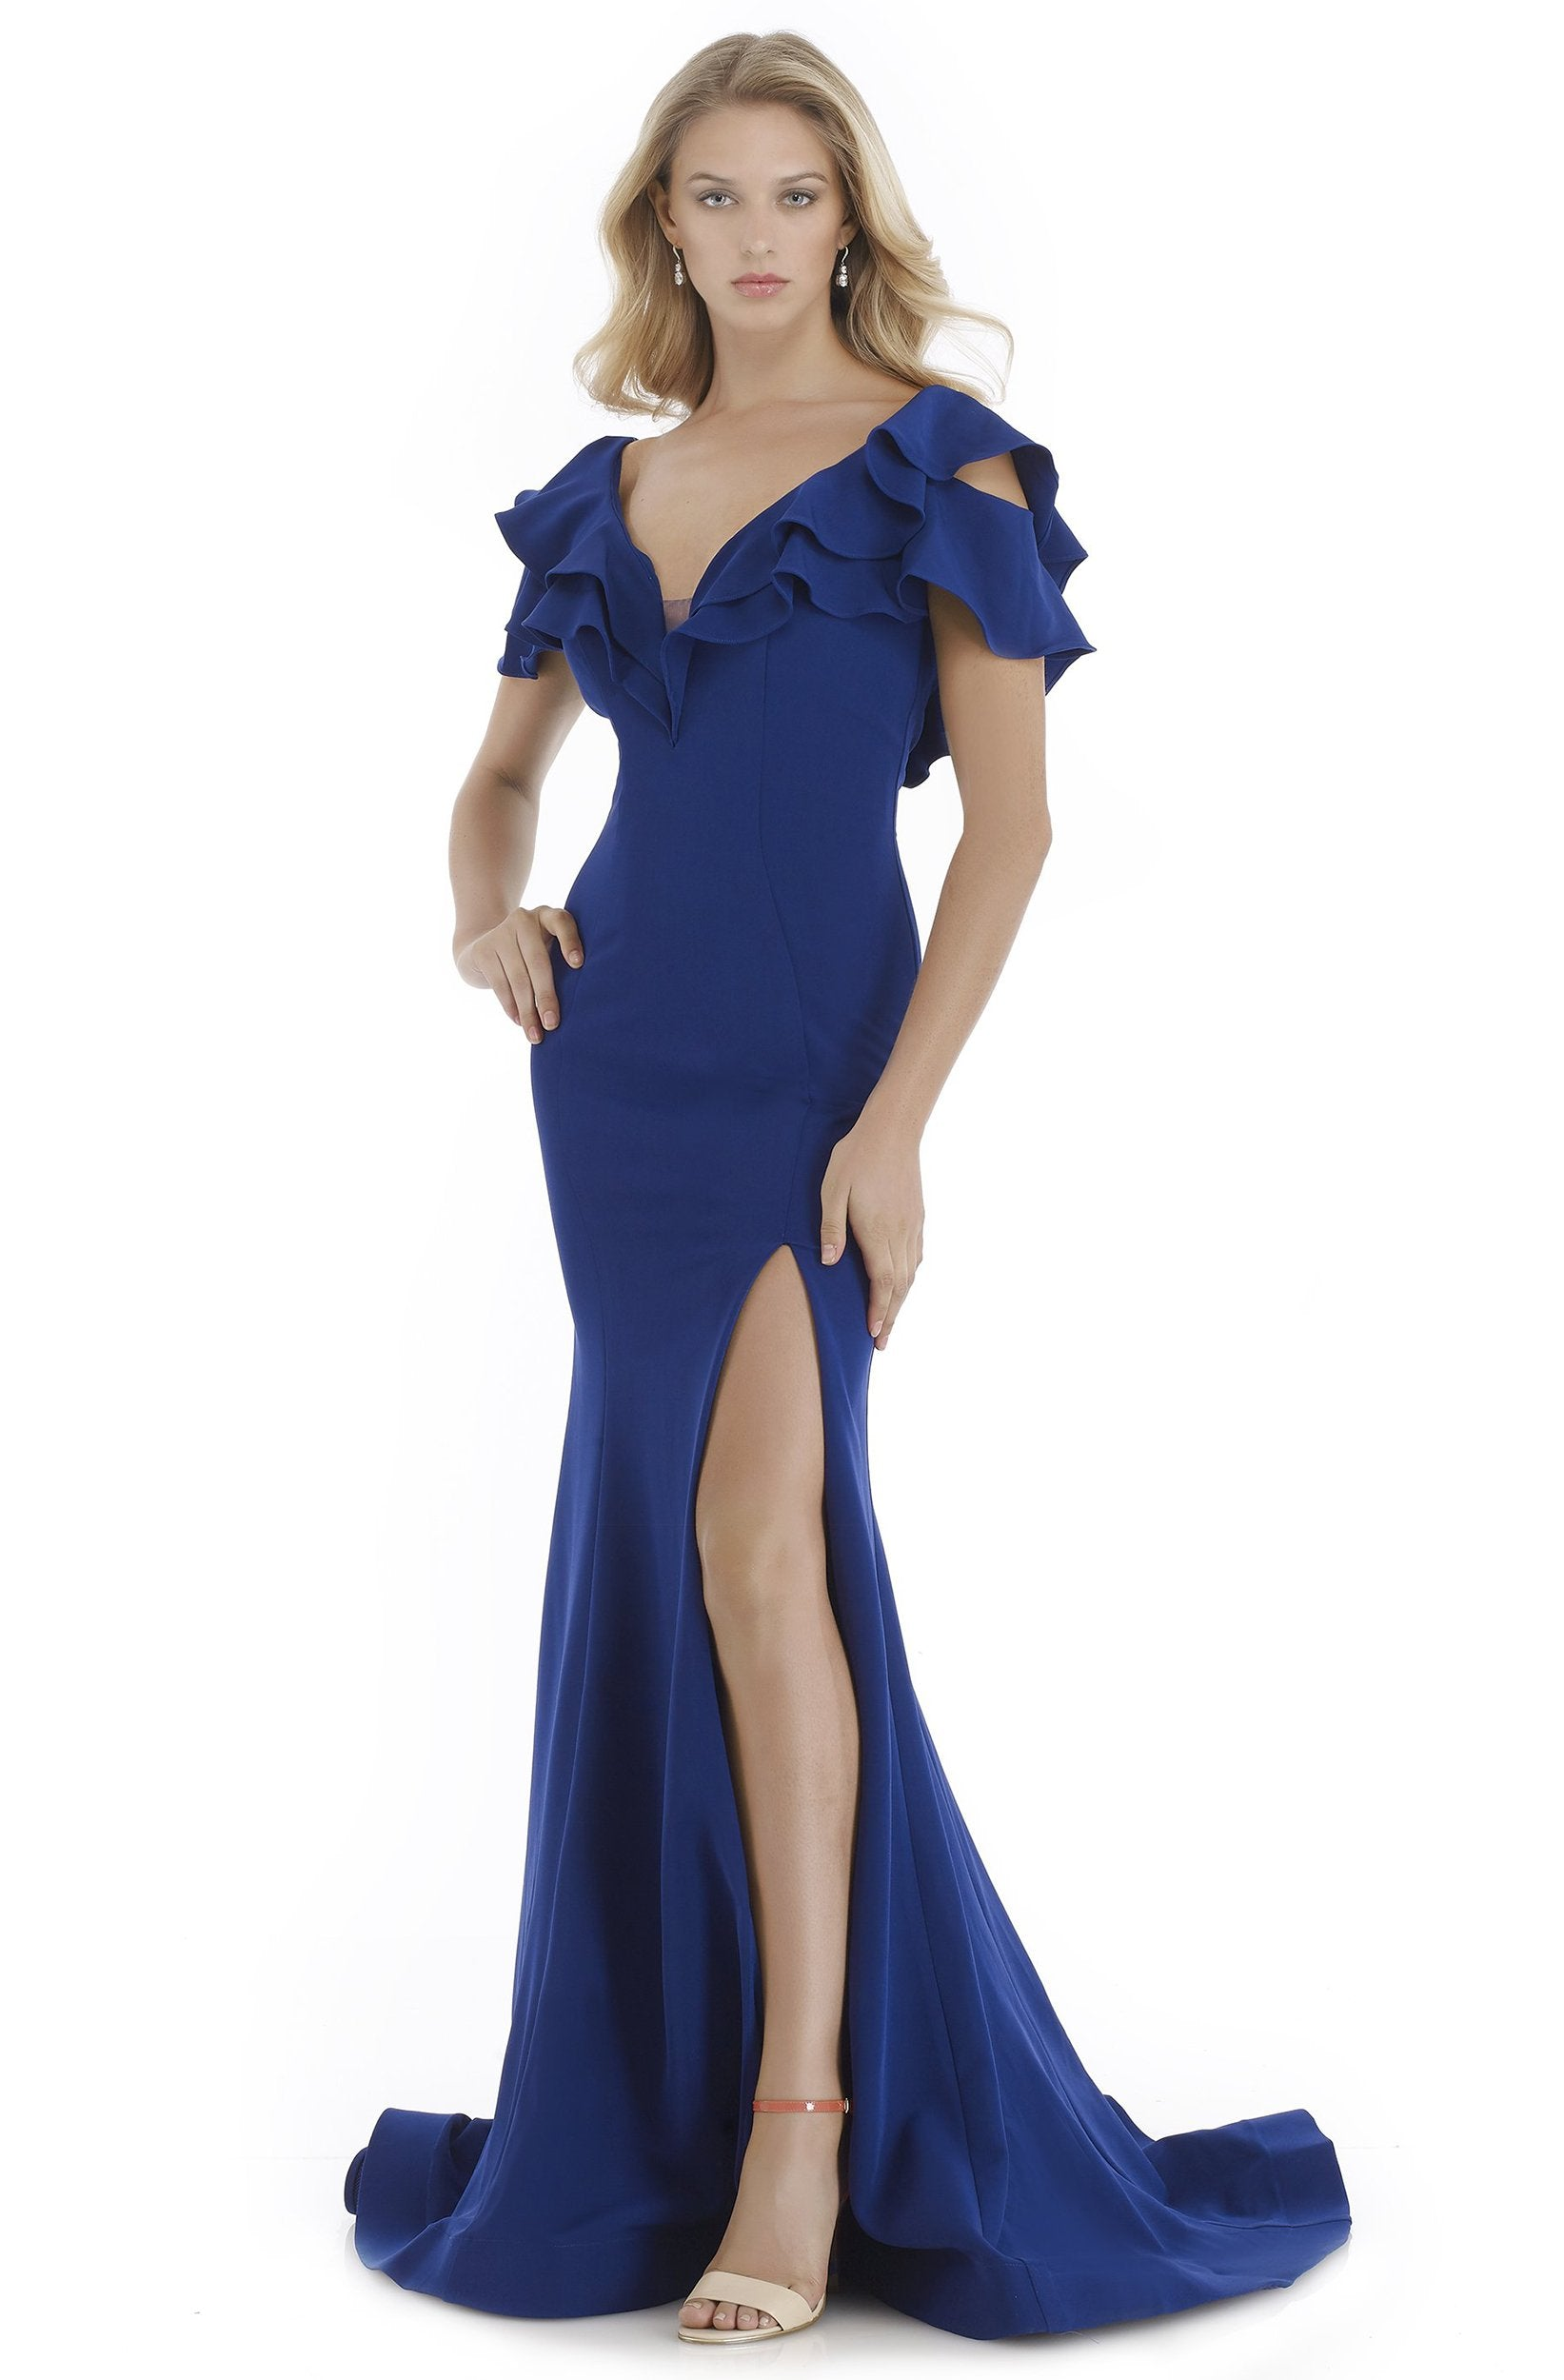 Morrell Maxie - 16064 Ruffled Plunging V-neck Mermaid Dress in Blue